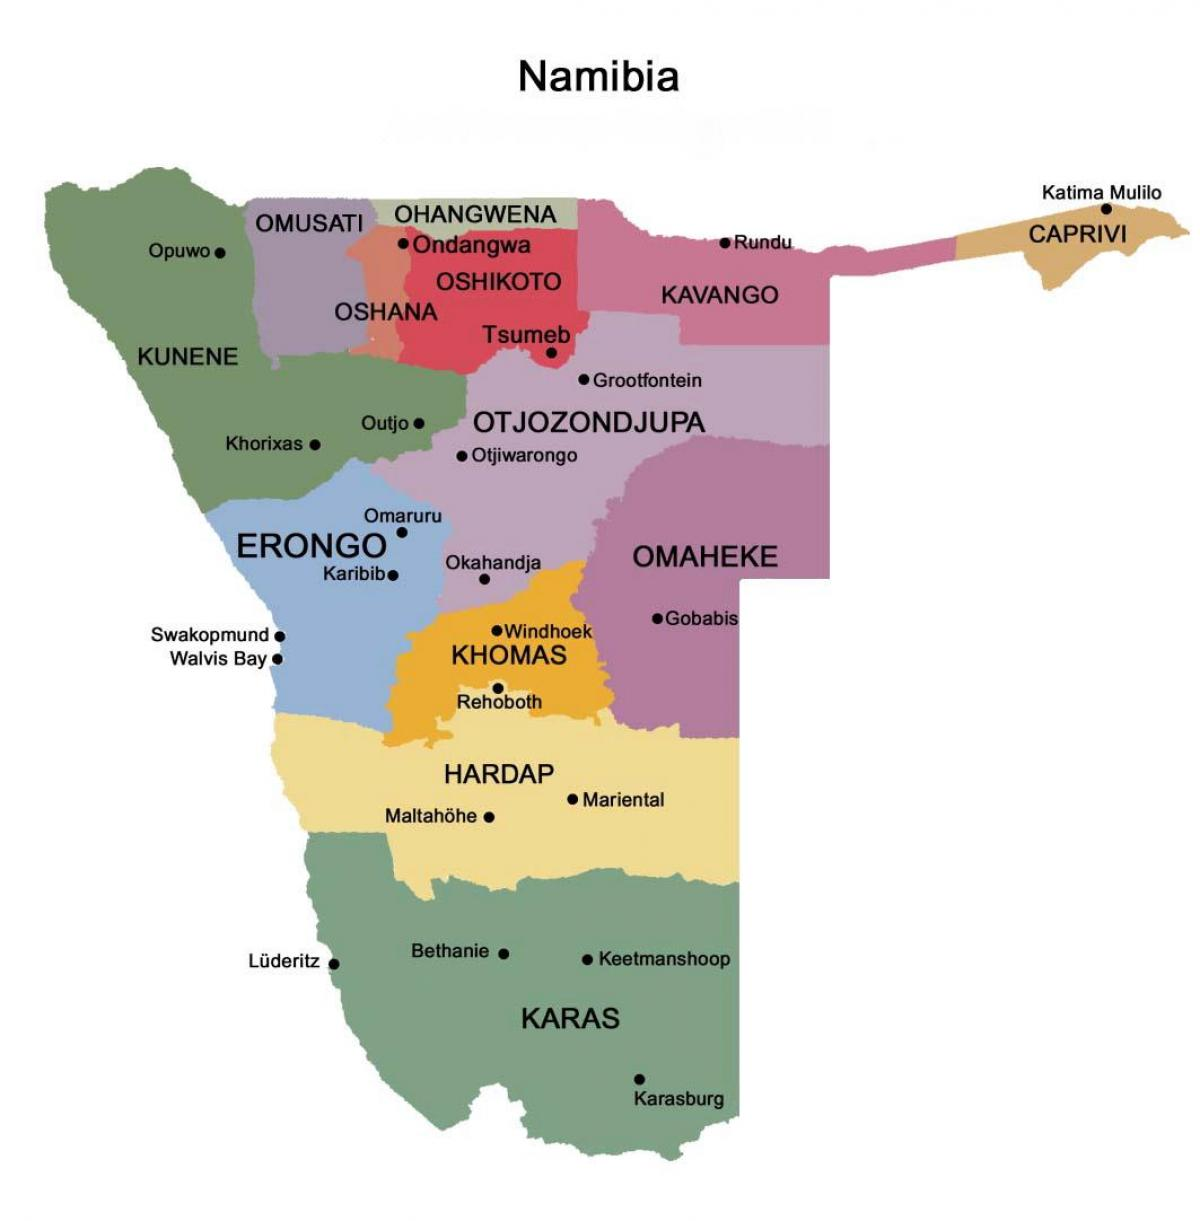 Map of Namibia with regions